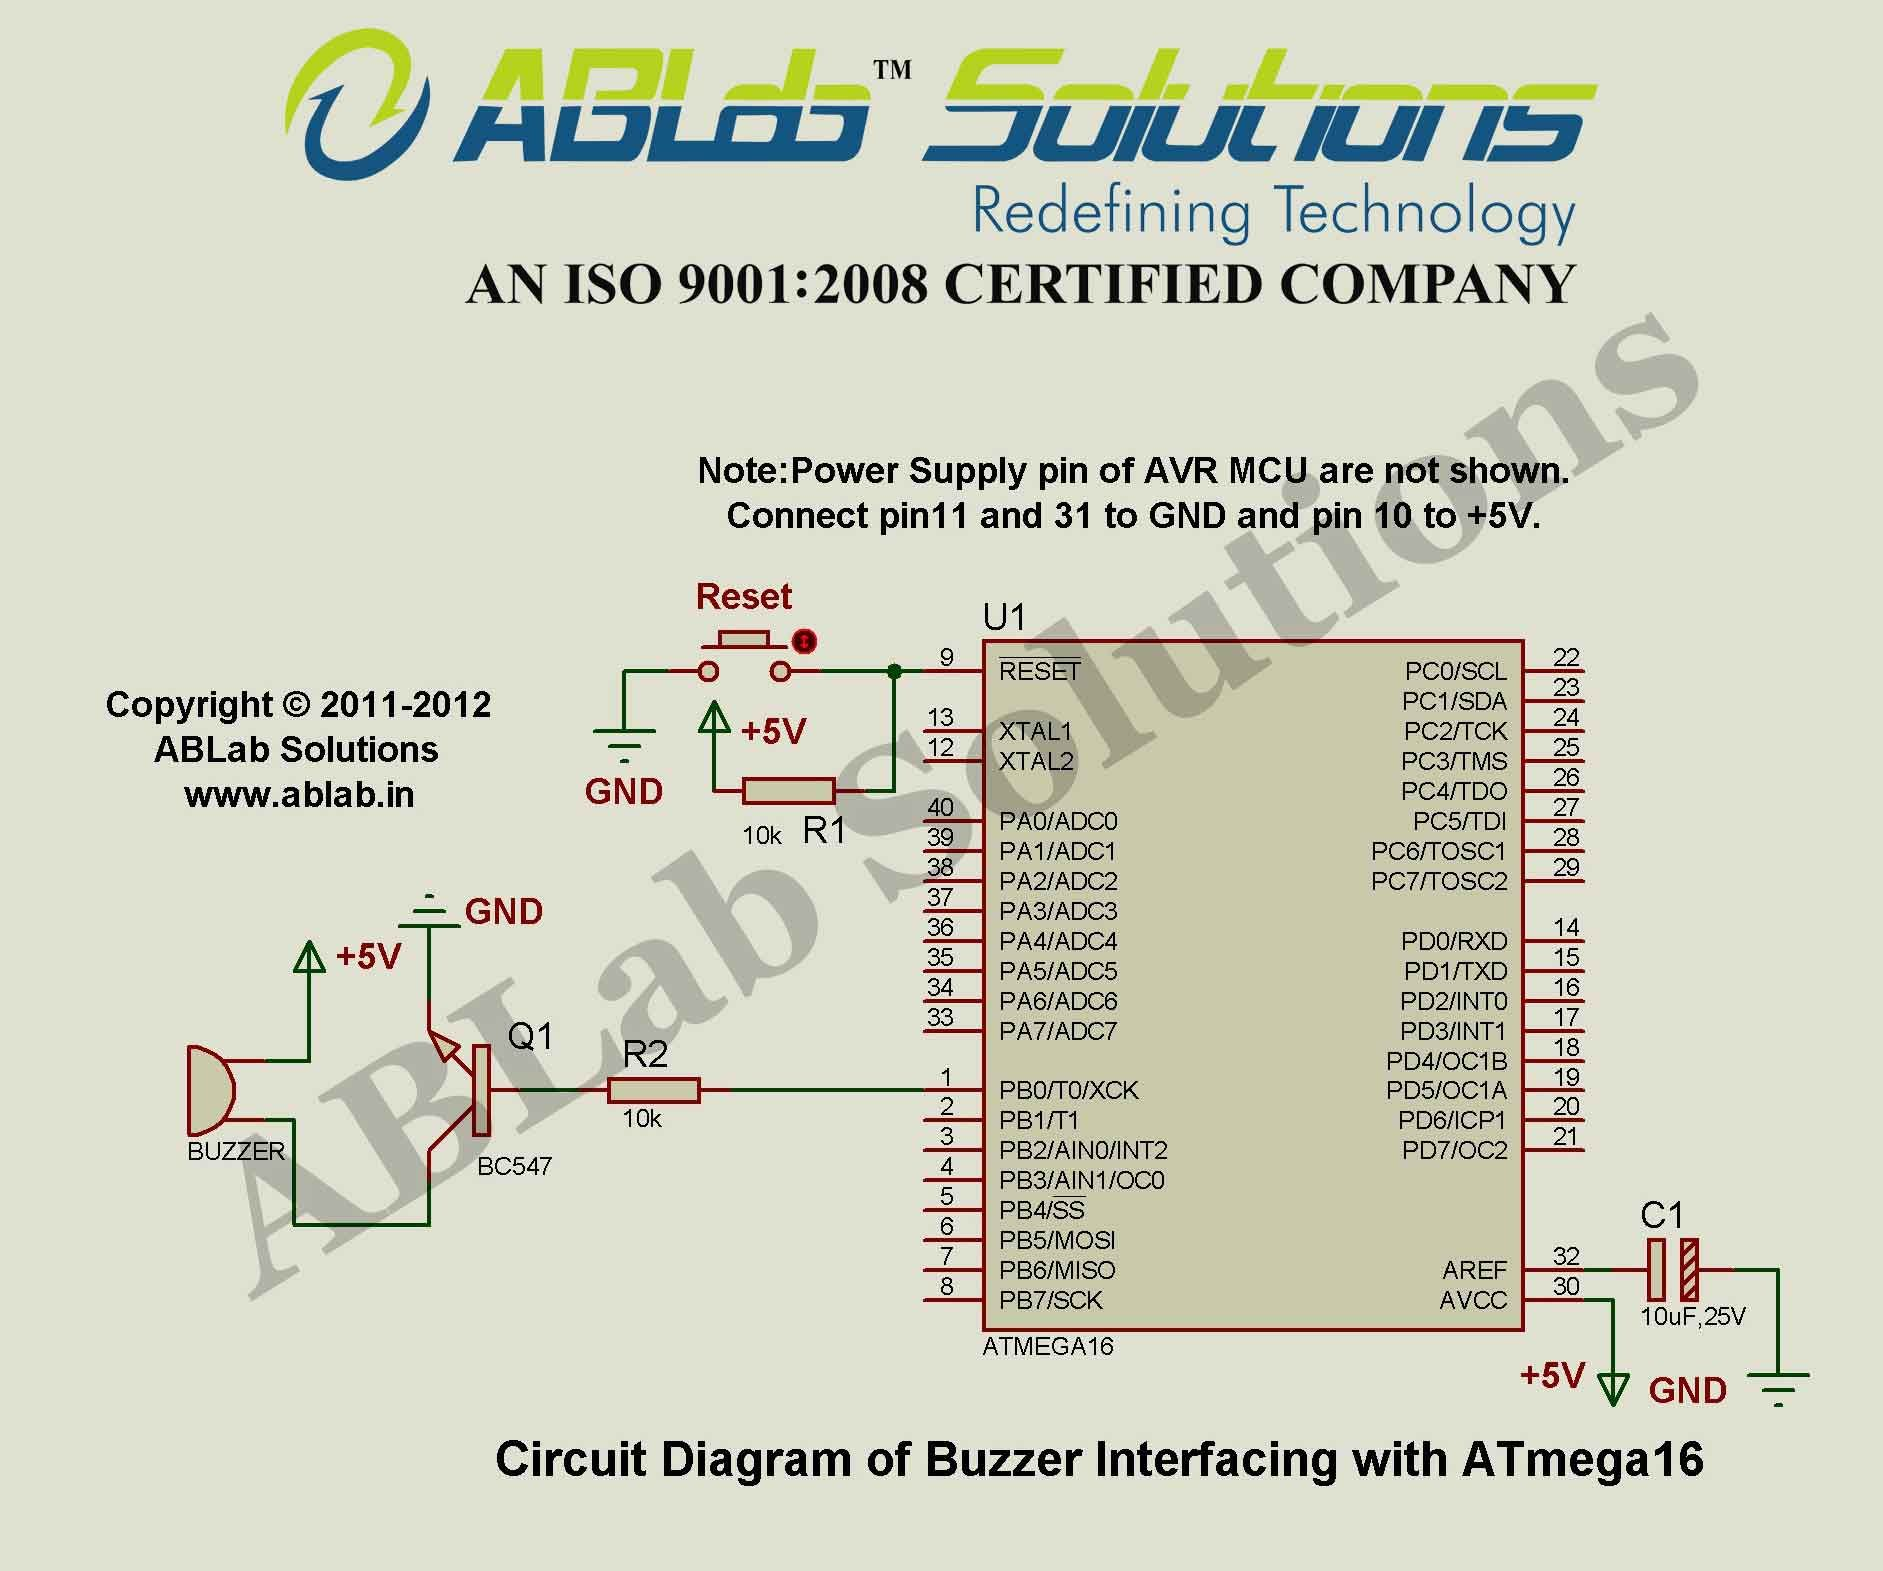 Buzzer Interfacing With Avr Atmega16 Microcontroller Circuit Diagram Project Code Ablab Solutions